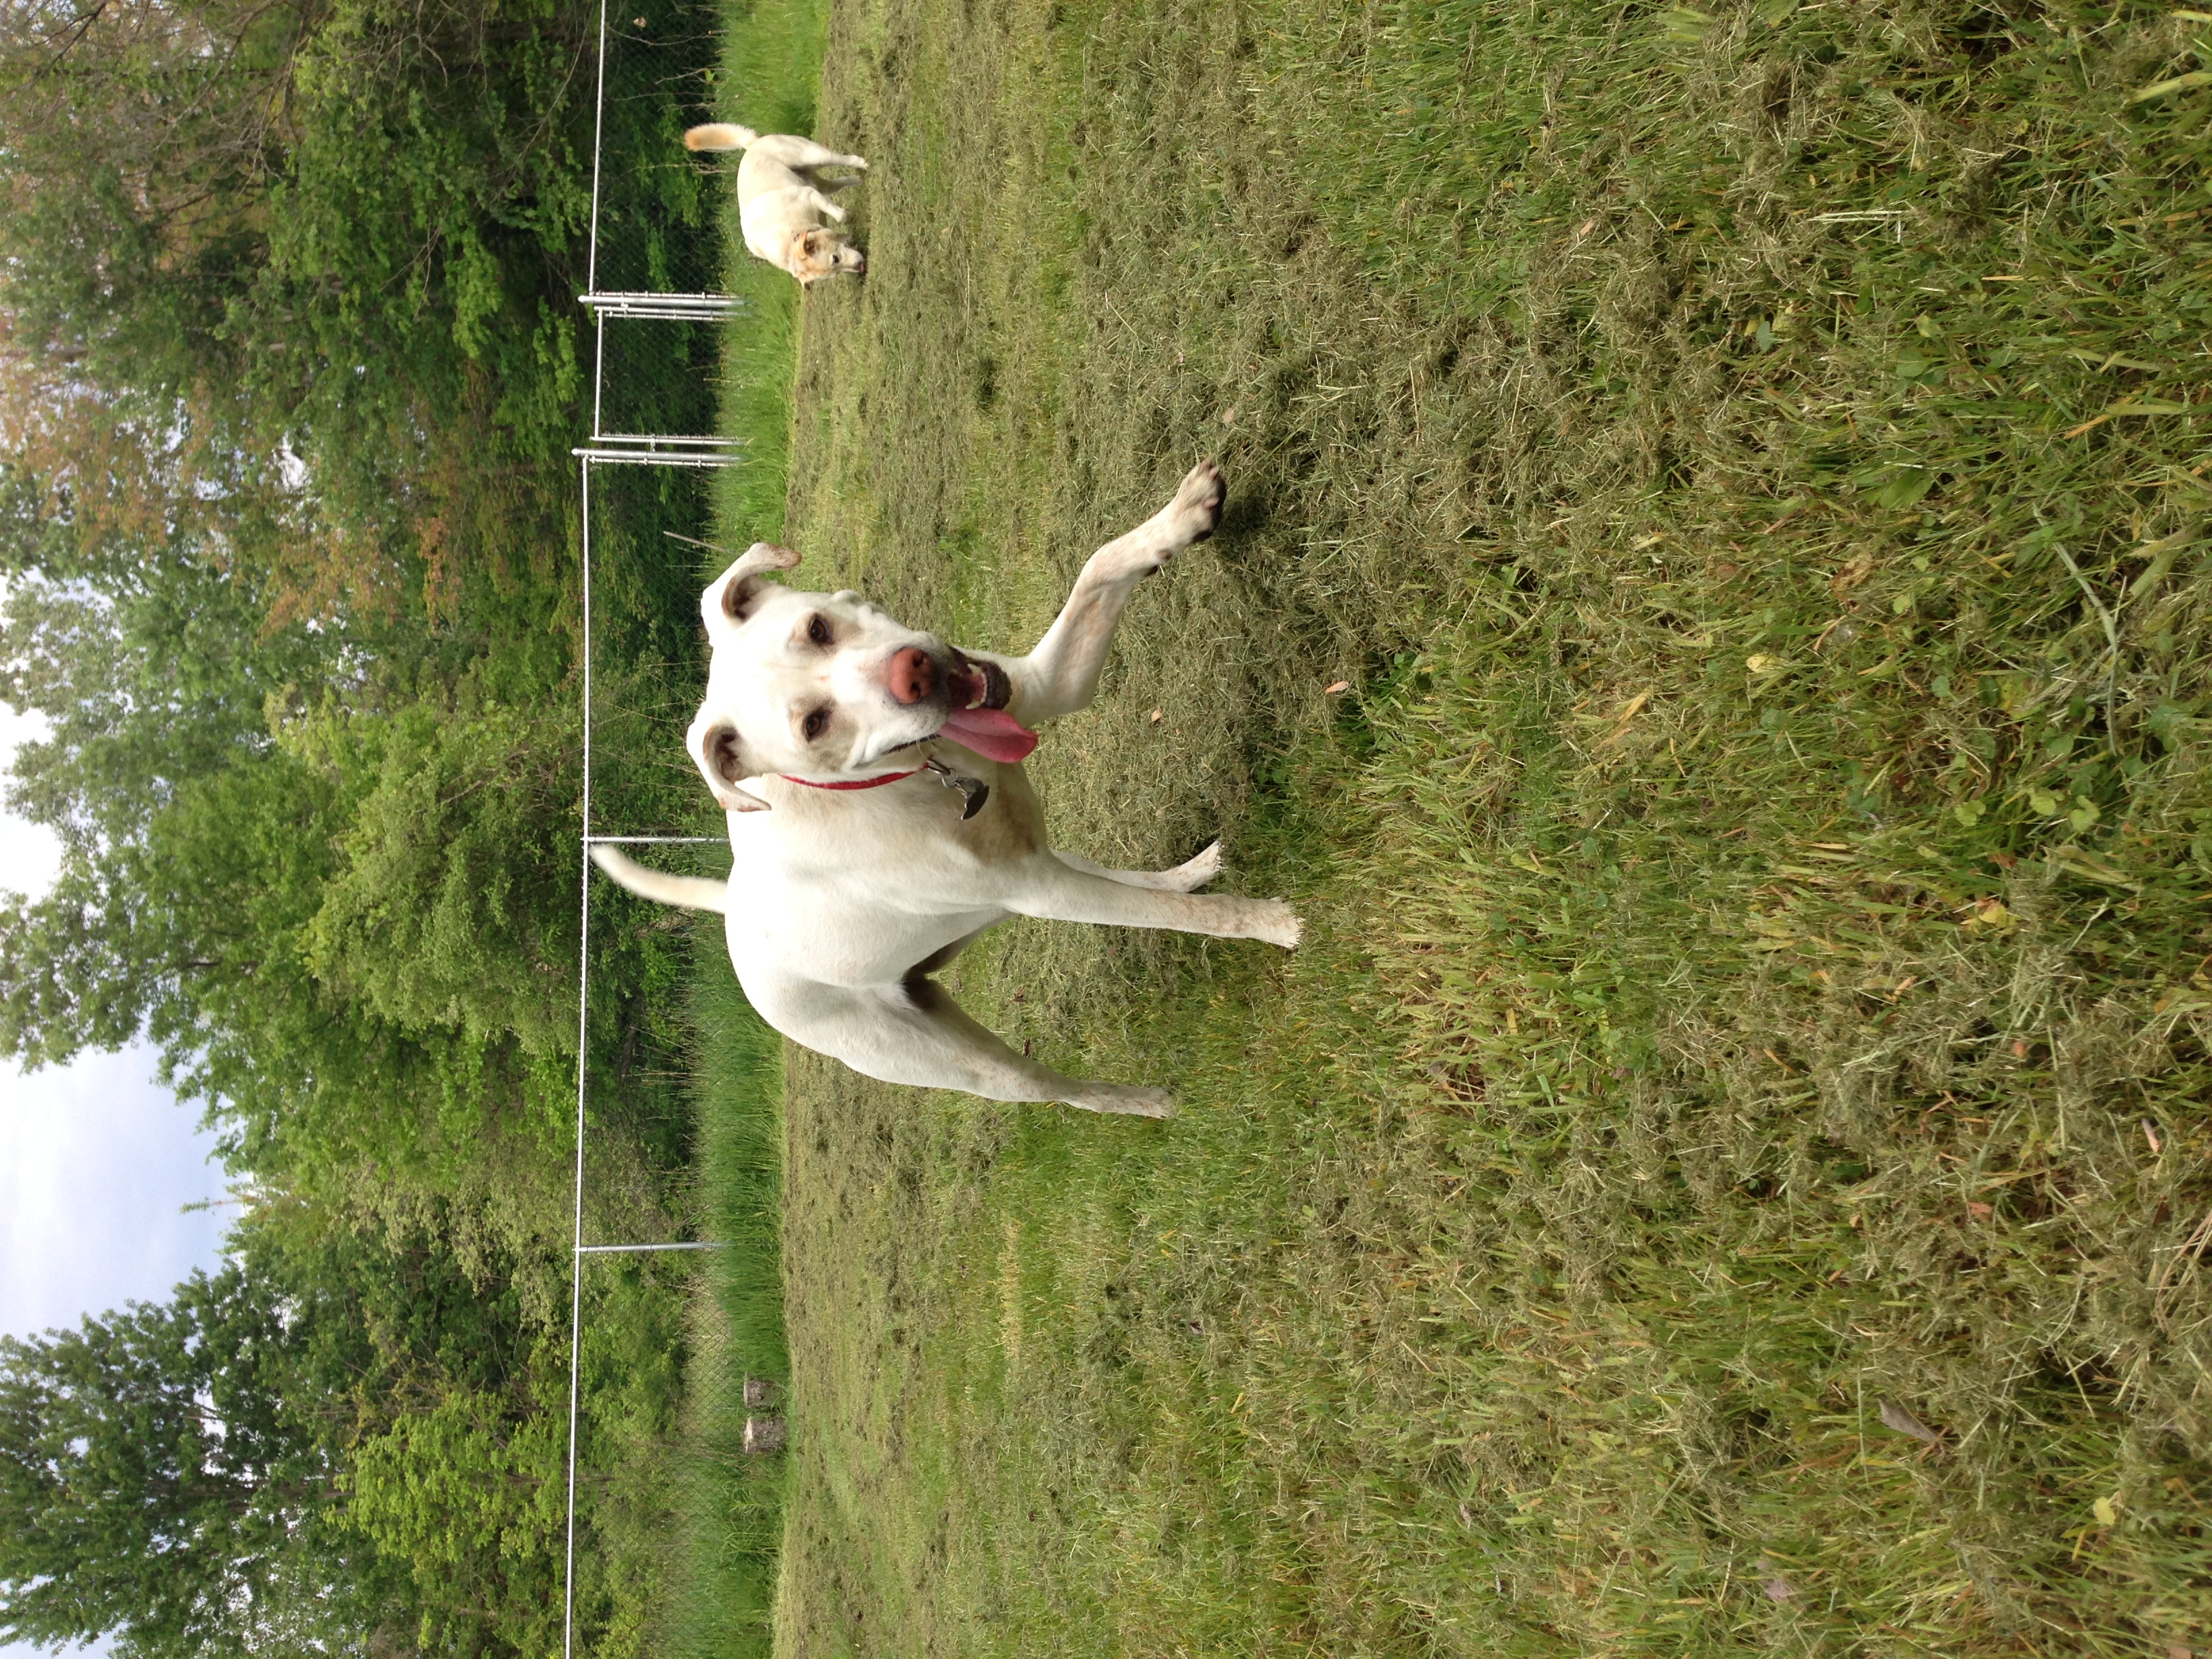 Our friends Hushpuppy and Hank at play!